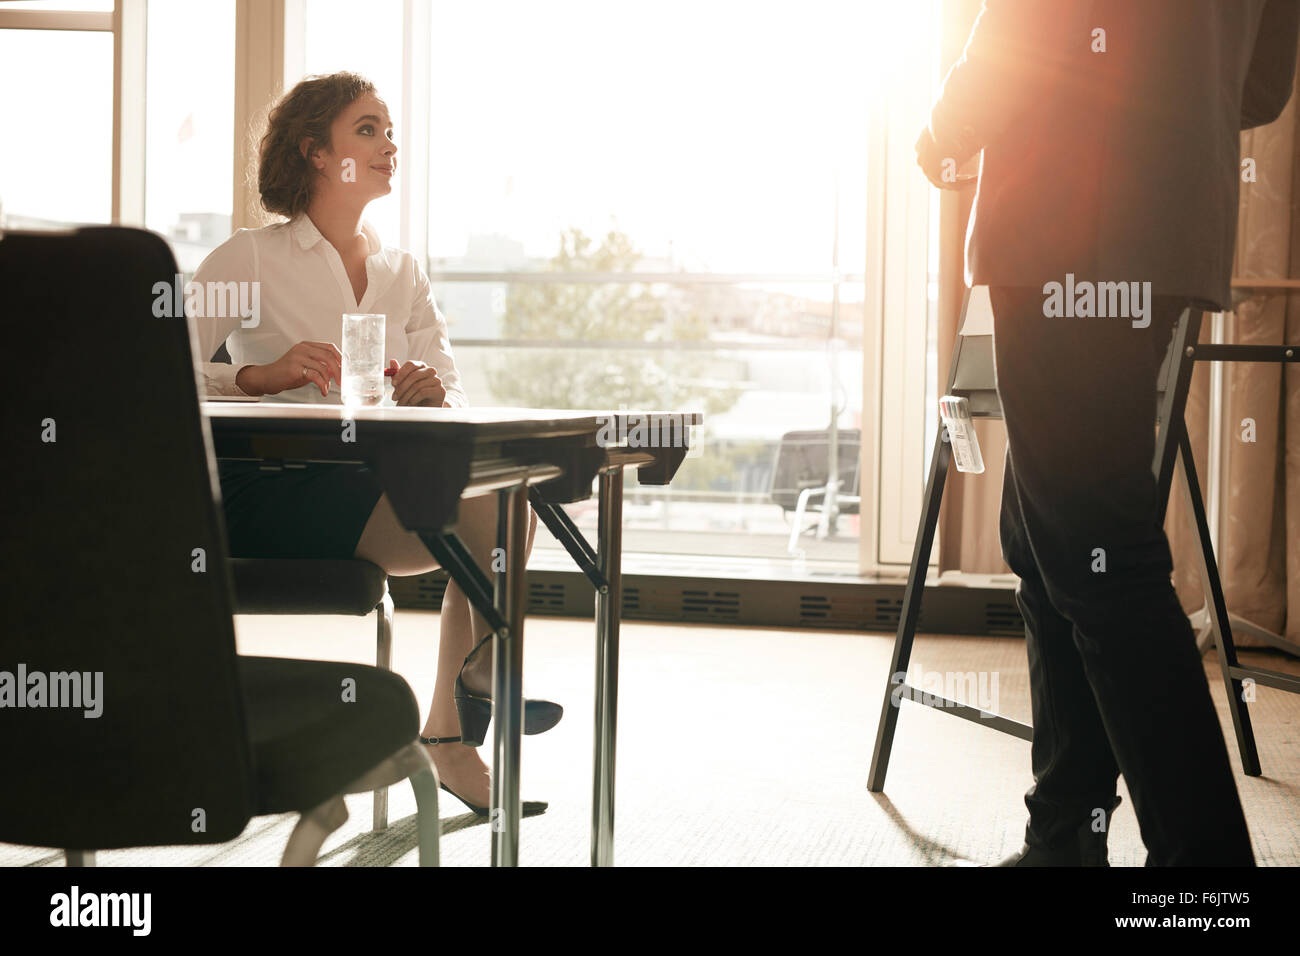 Shot of young female executive sitting at conference table with businessman showing presentation. Businesspeople - Stock Image